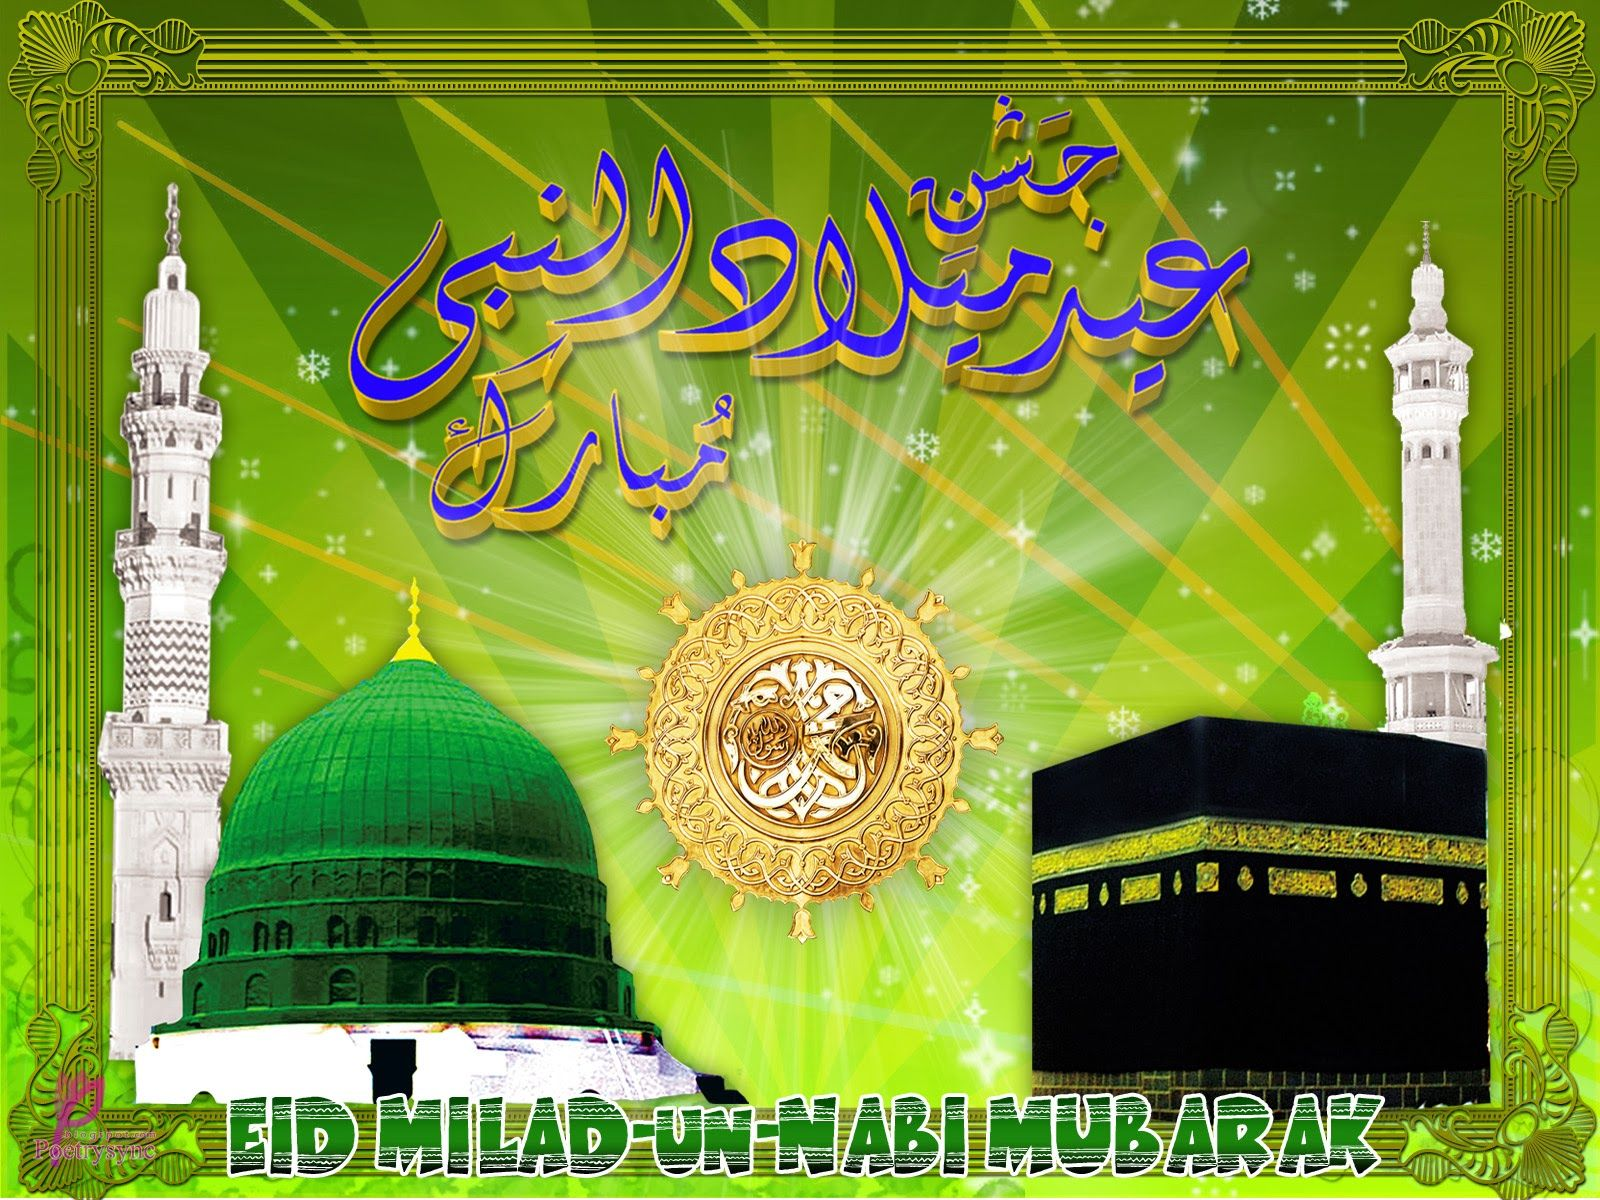 Wallpaper download eid milad un nabi - Find This Pin And More On Eid Milad Un Nabi By Poetrysync